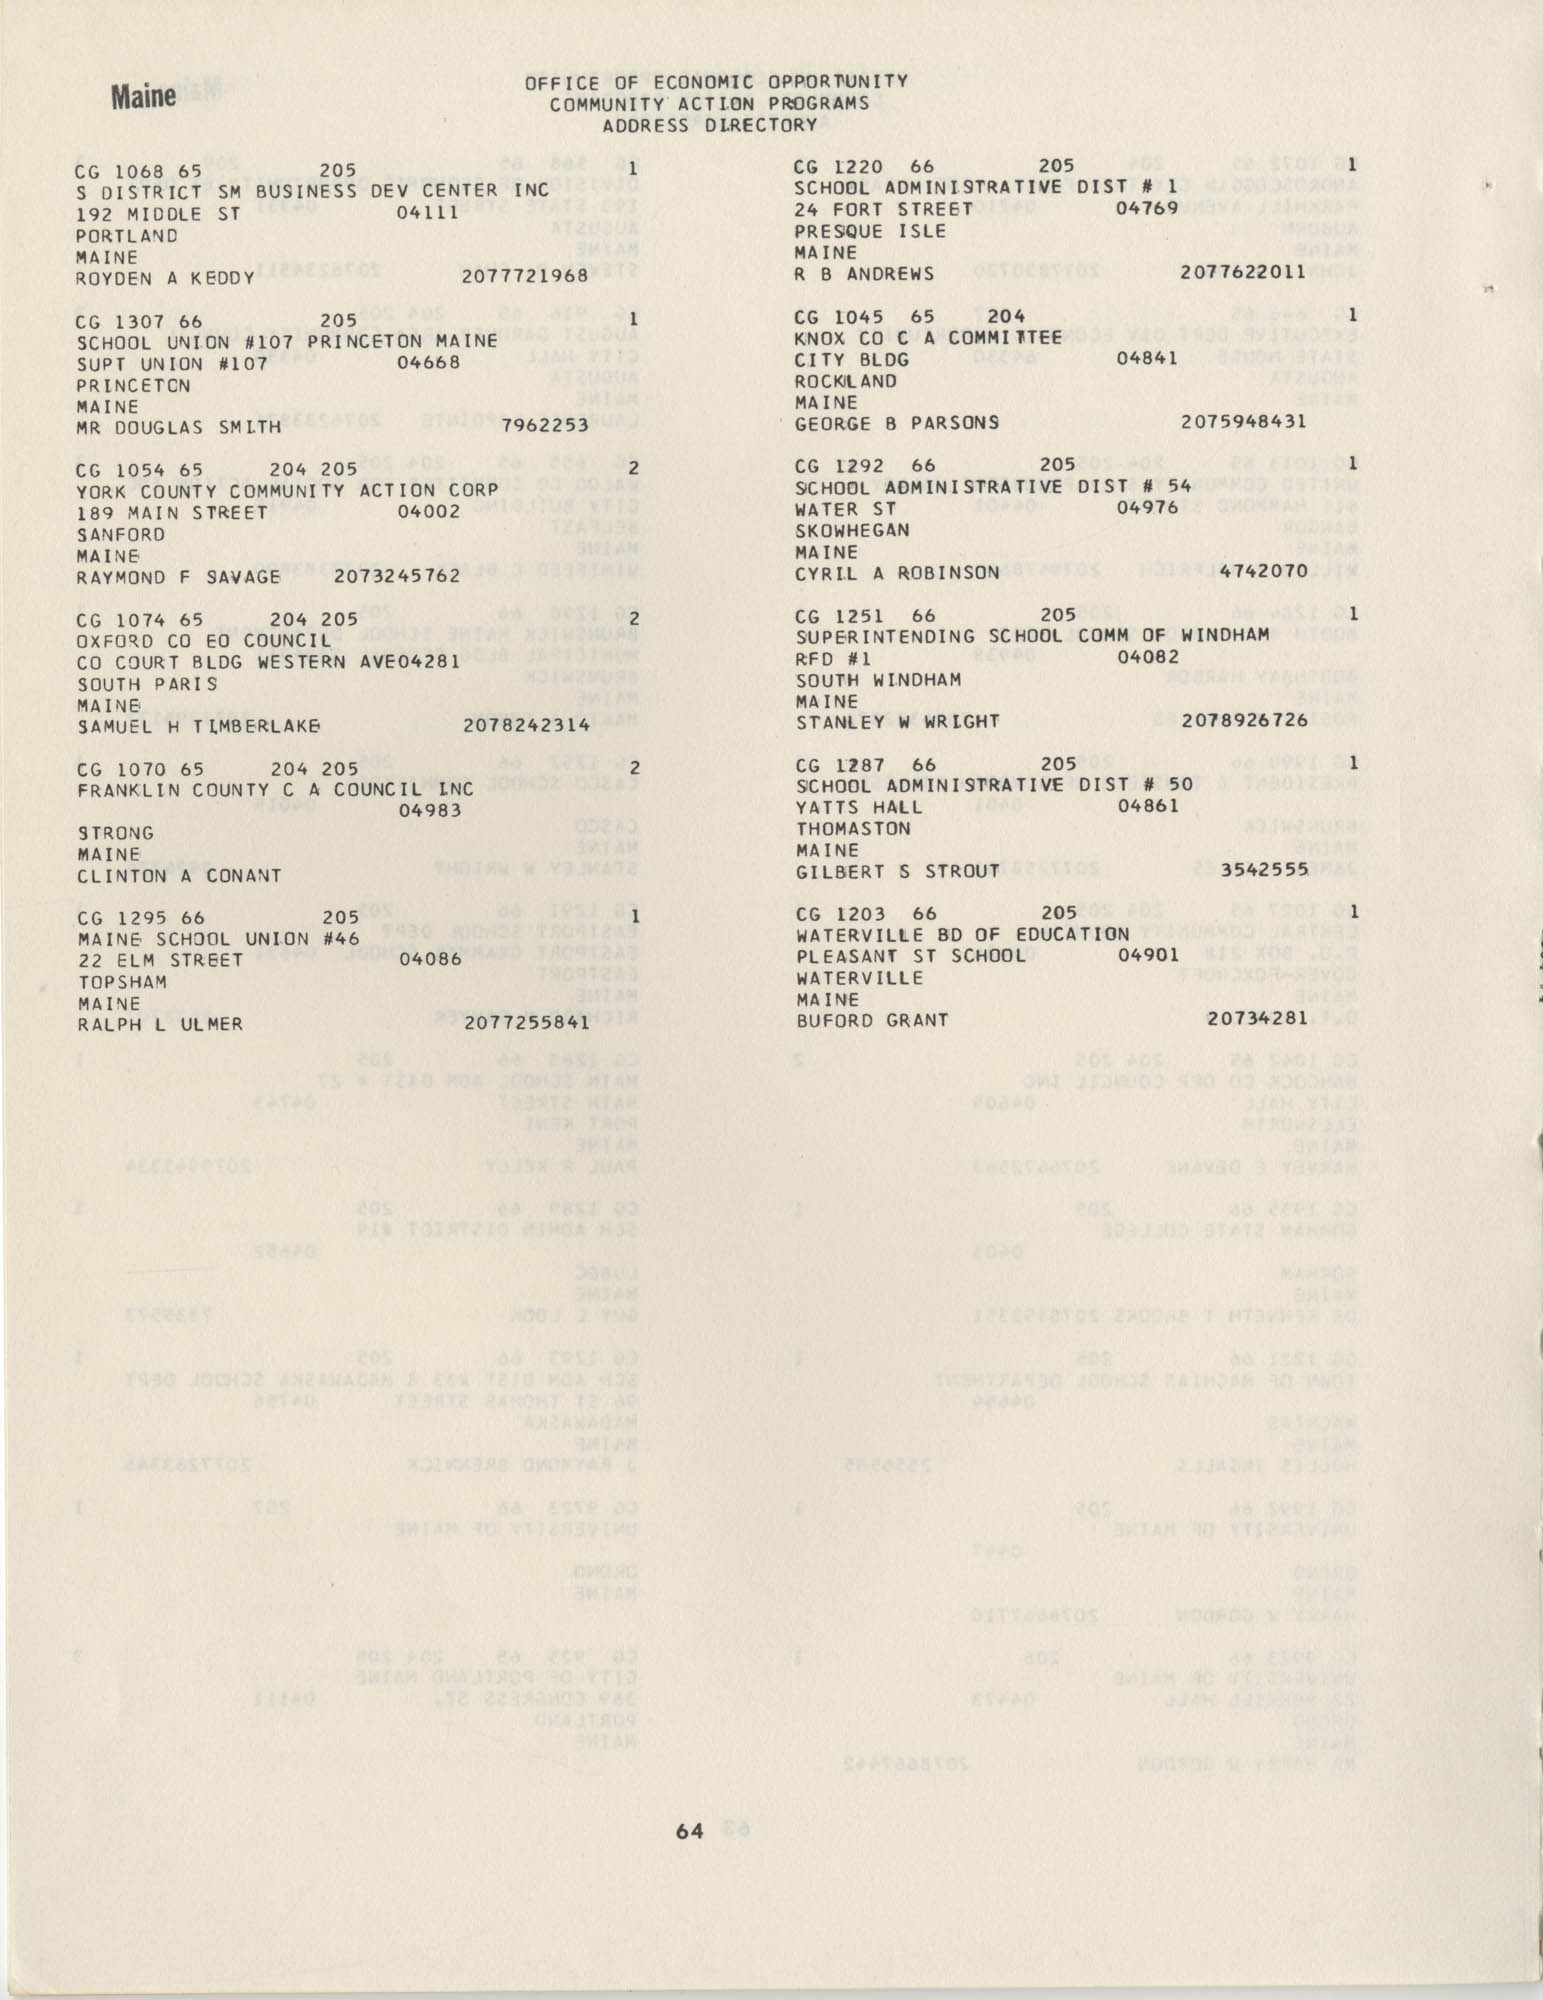 Community Action Programs Directory, June 15, 1966, Page 64